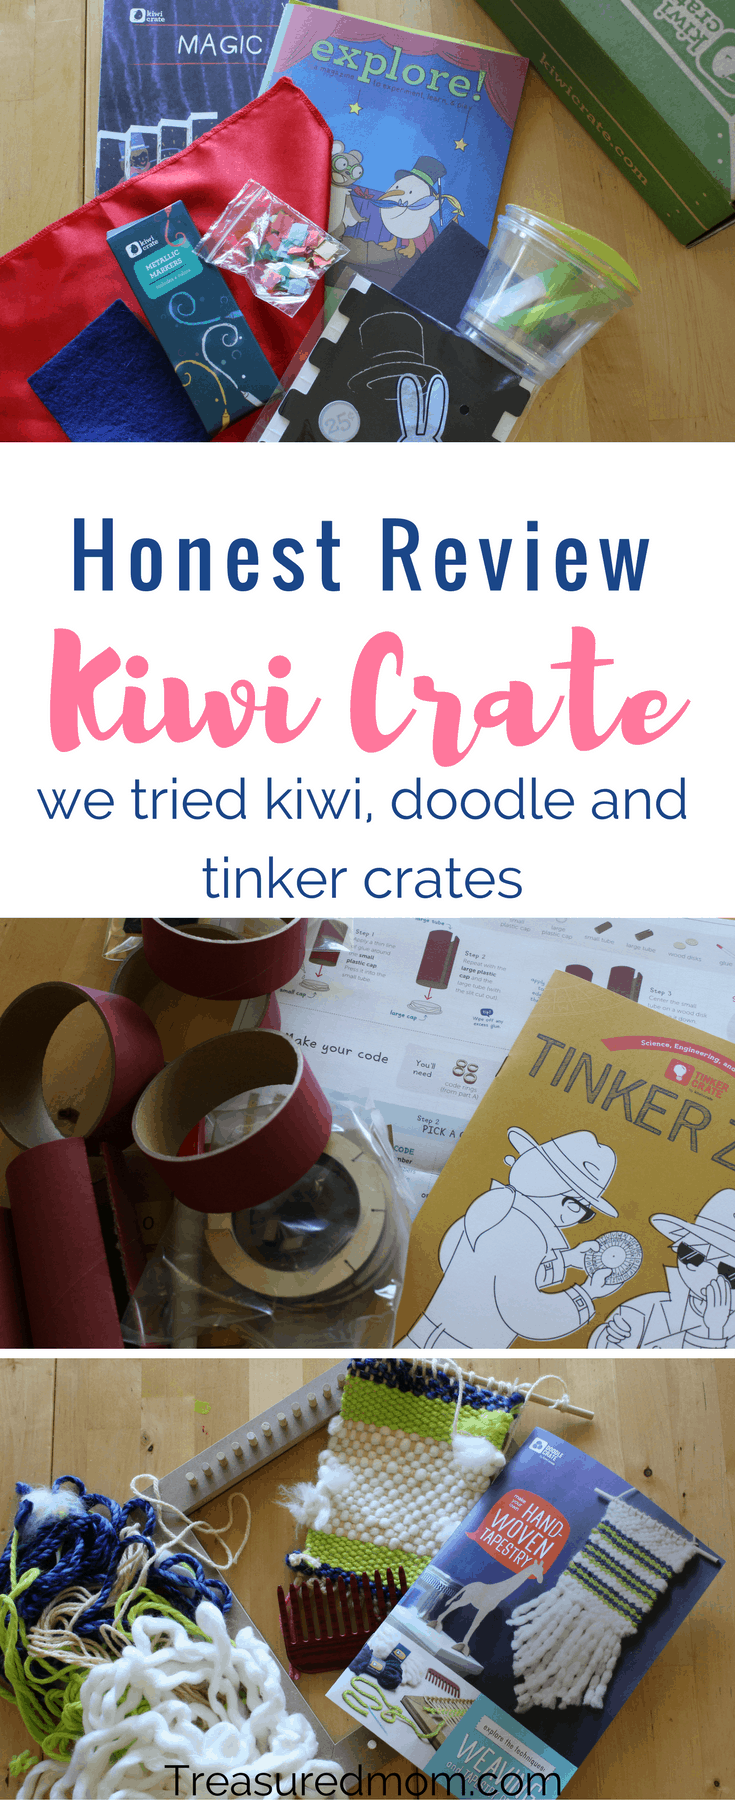 Have you tried Kiwi Co yet? Looking for an honest Kiwi Co Review? Look at all the fun our family is having with Kiwi Crate, Doodle Crate, and Tinker Crate. These are great fun family activities. Great birthday gifts or Christmas gifts.